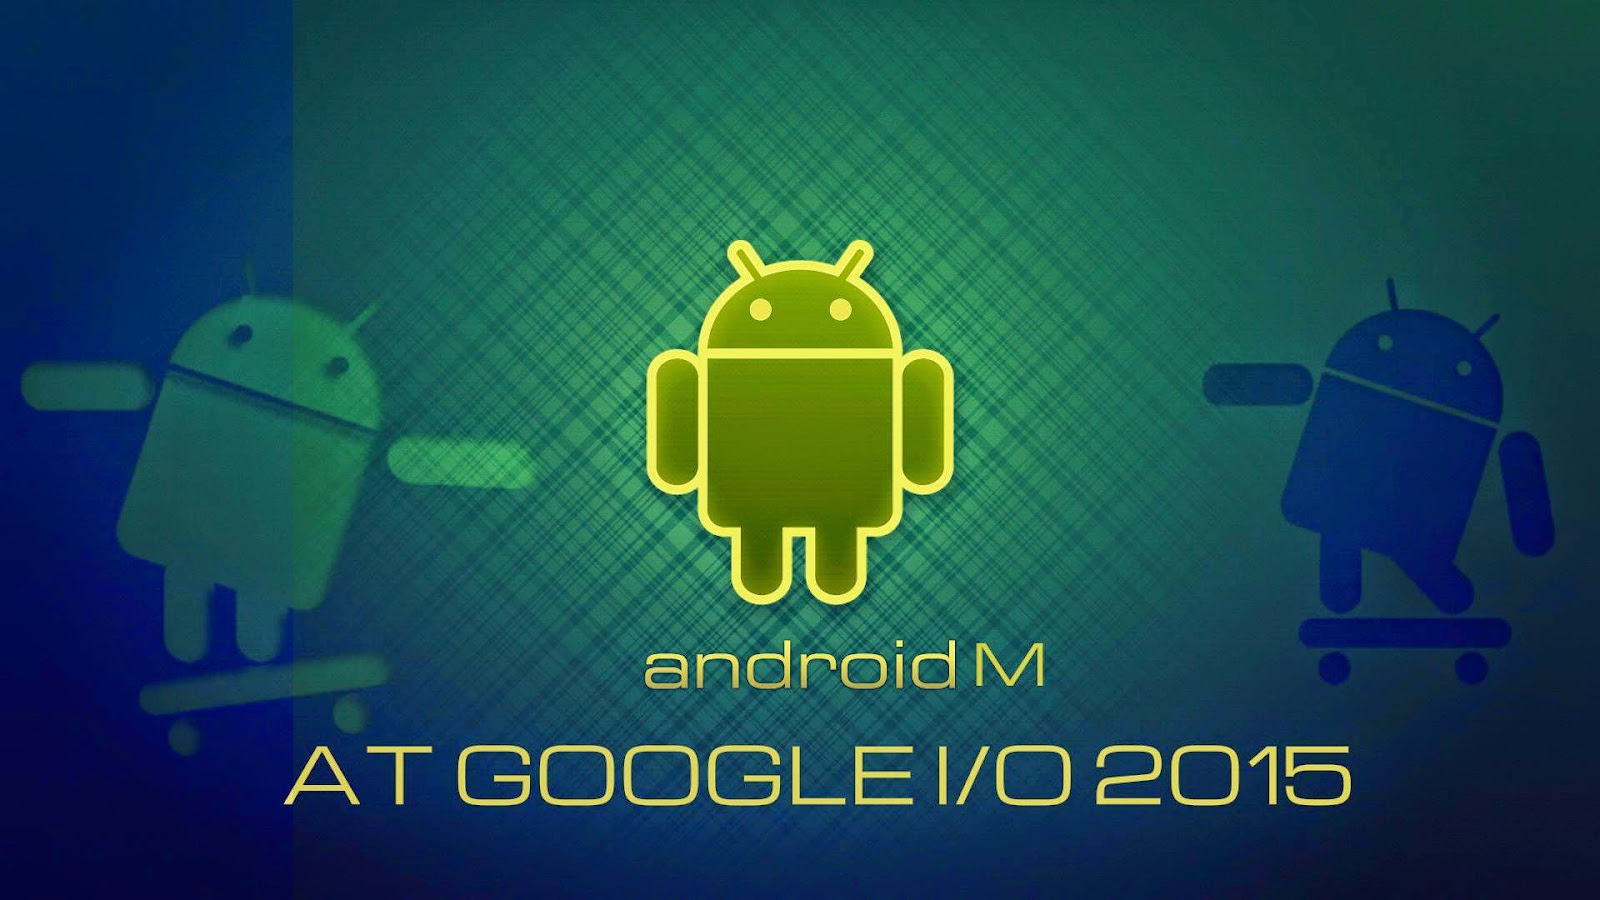 Android M, Google event, Google I/O 2015, Google Android M